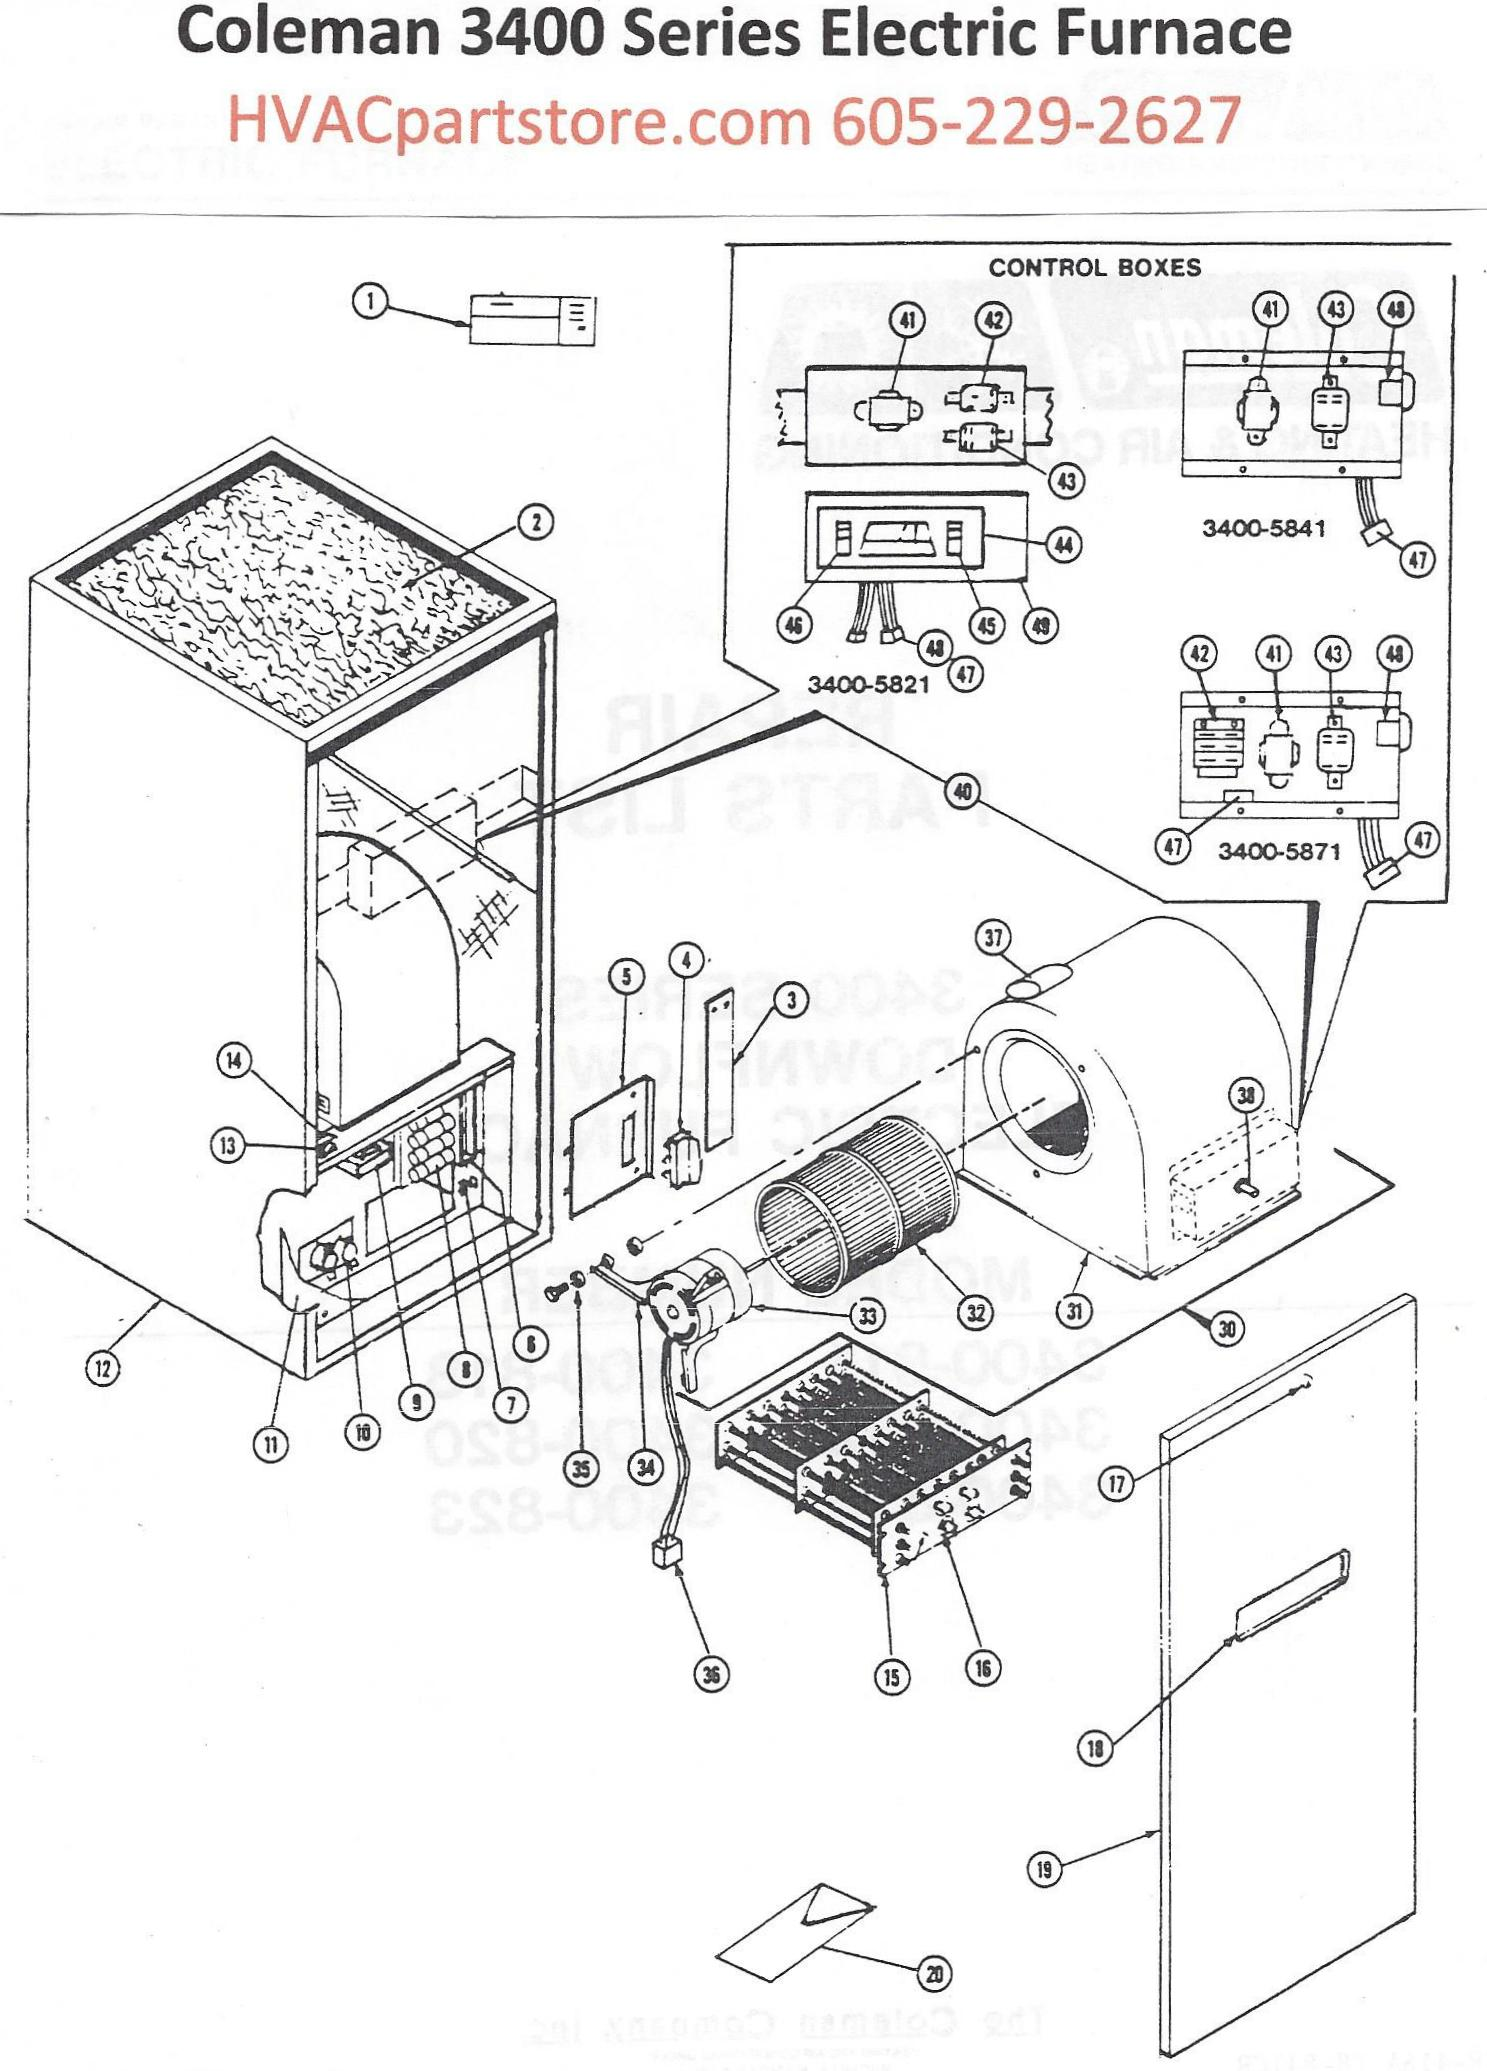 3400 8SeriesDiagram_c66278d3 664a 4321 8615 483111636a4e?1818840816544769902 3400 815 coleman electric furnace parts hvacpartstore Coleman Furnace Wiring Diagram at gsmx.co